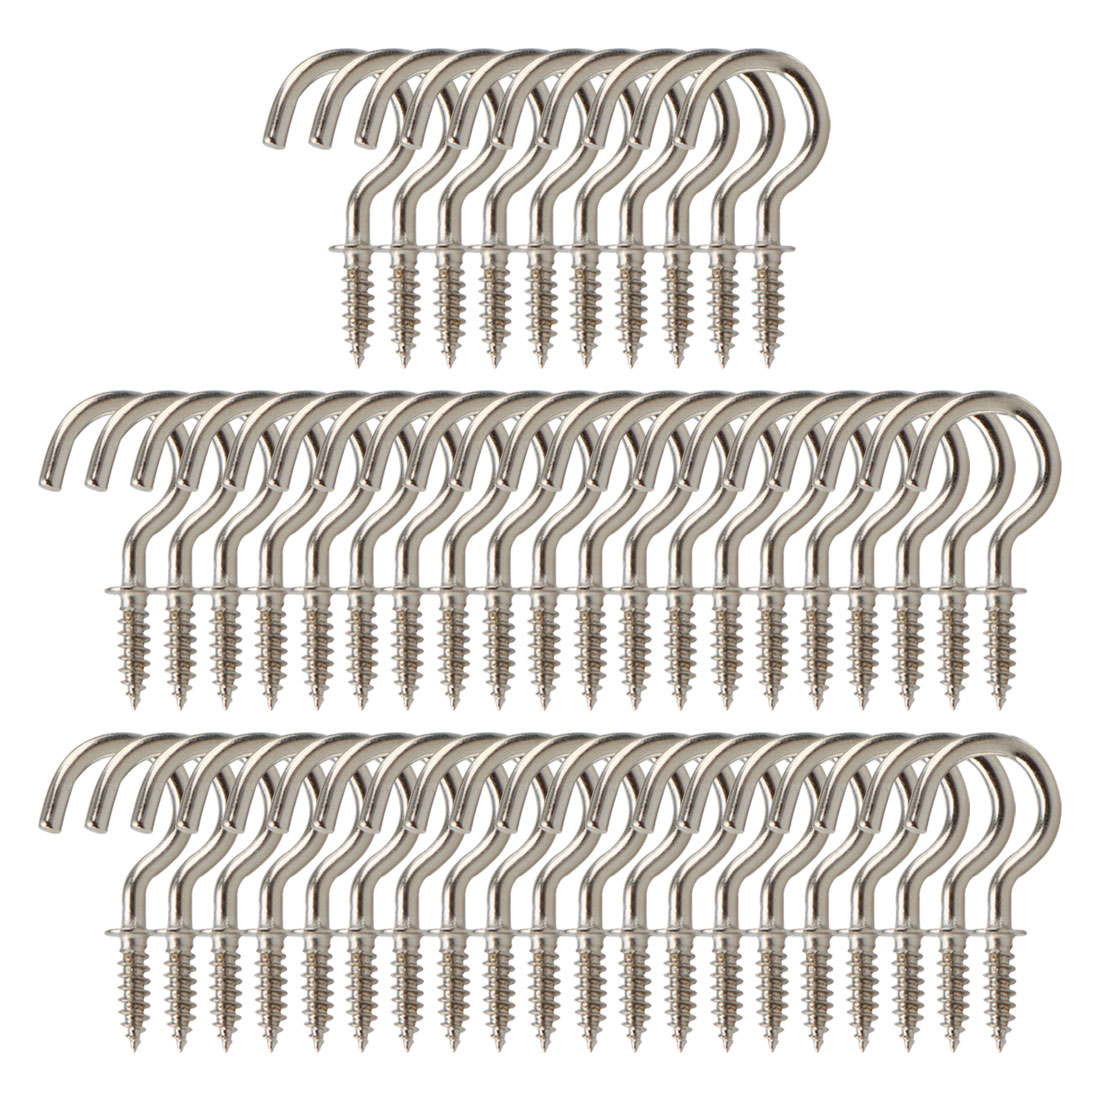 50pcs Cup Ceiling Hooks 3/4 Inch Nickel Plating Screw Holder Silver Gray